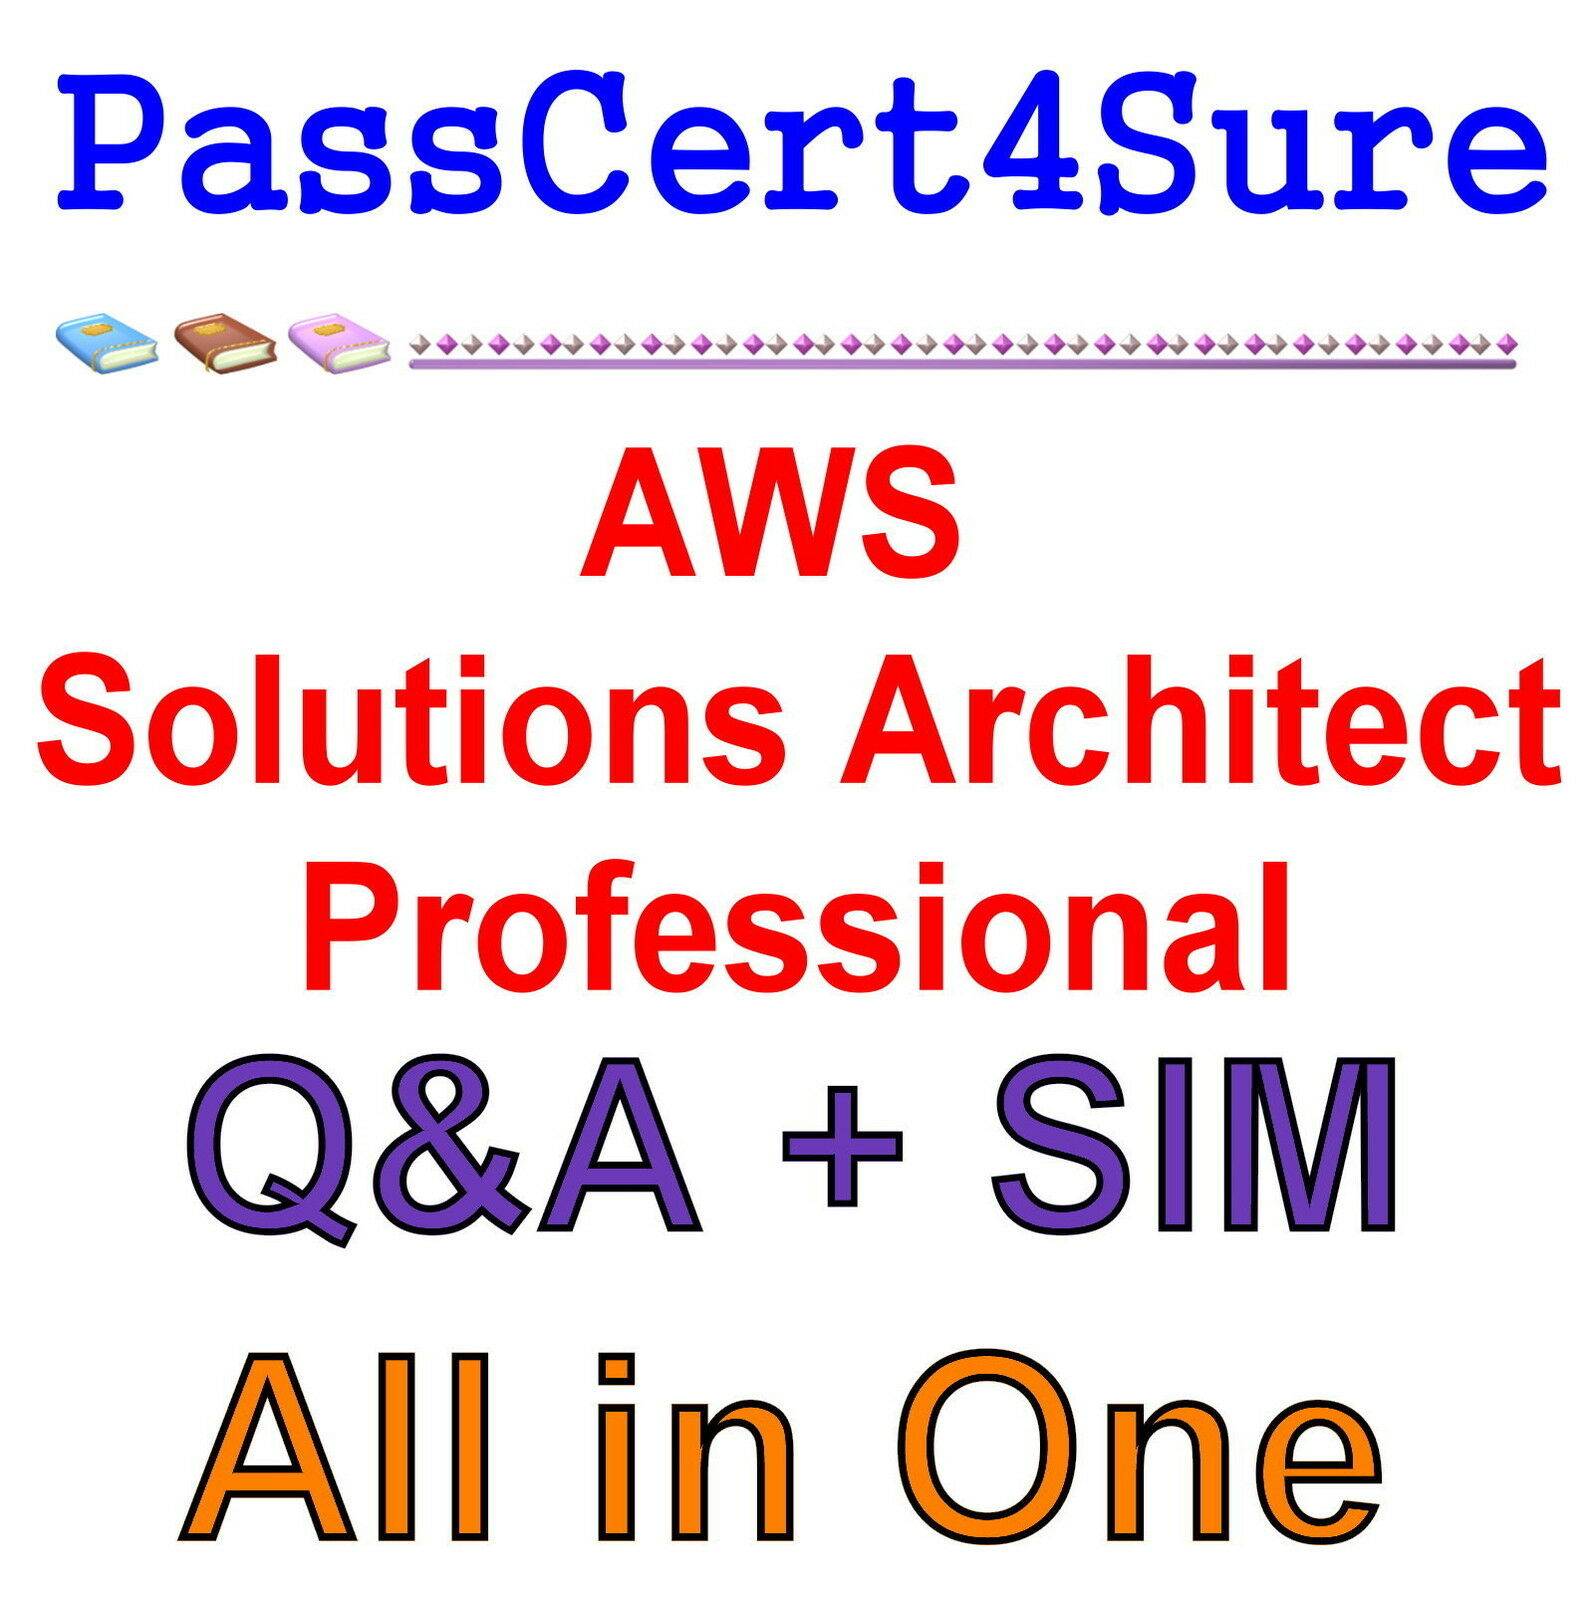 Amazon aws certified solutions architect professional exam qa pdf picture 1 of 1 xflitez Gallery